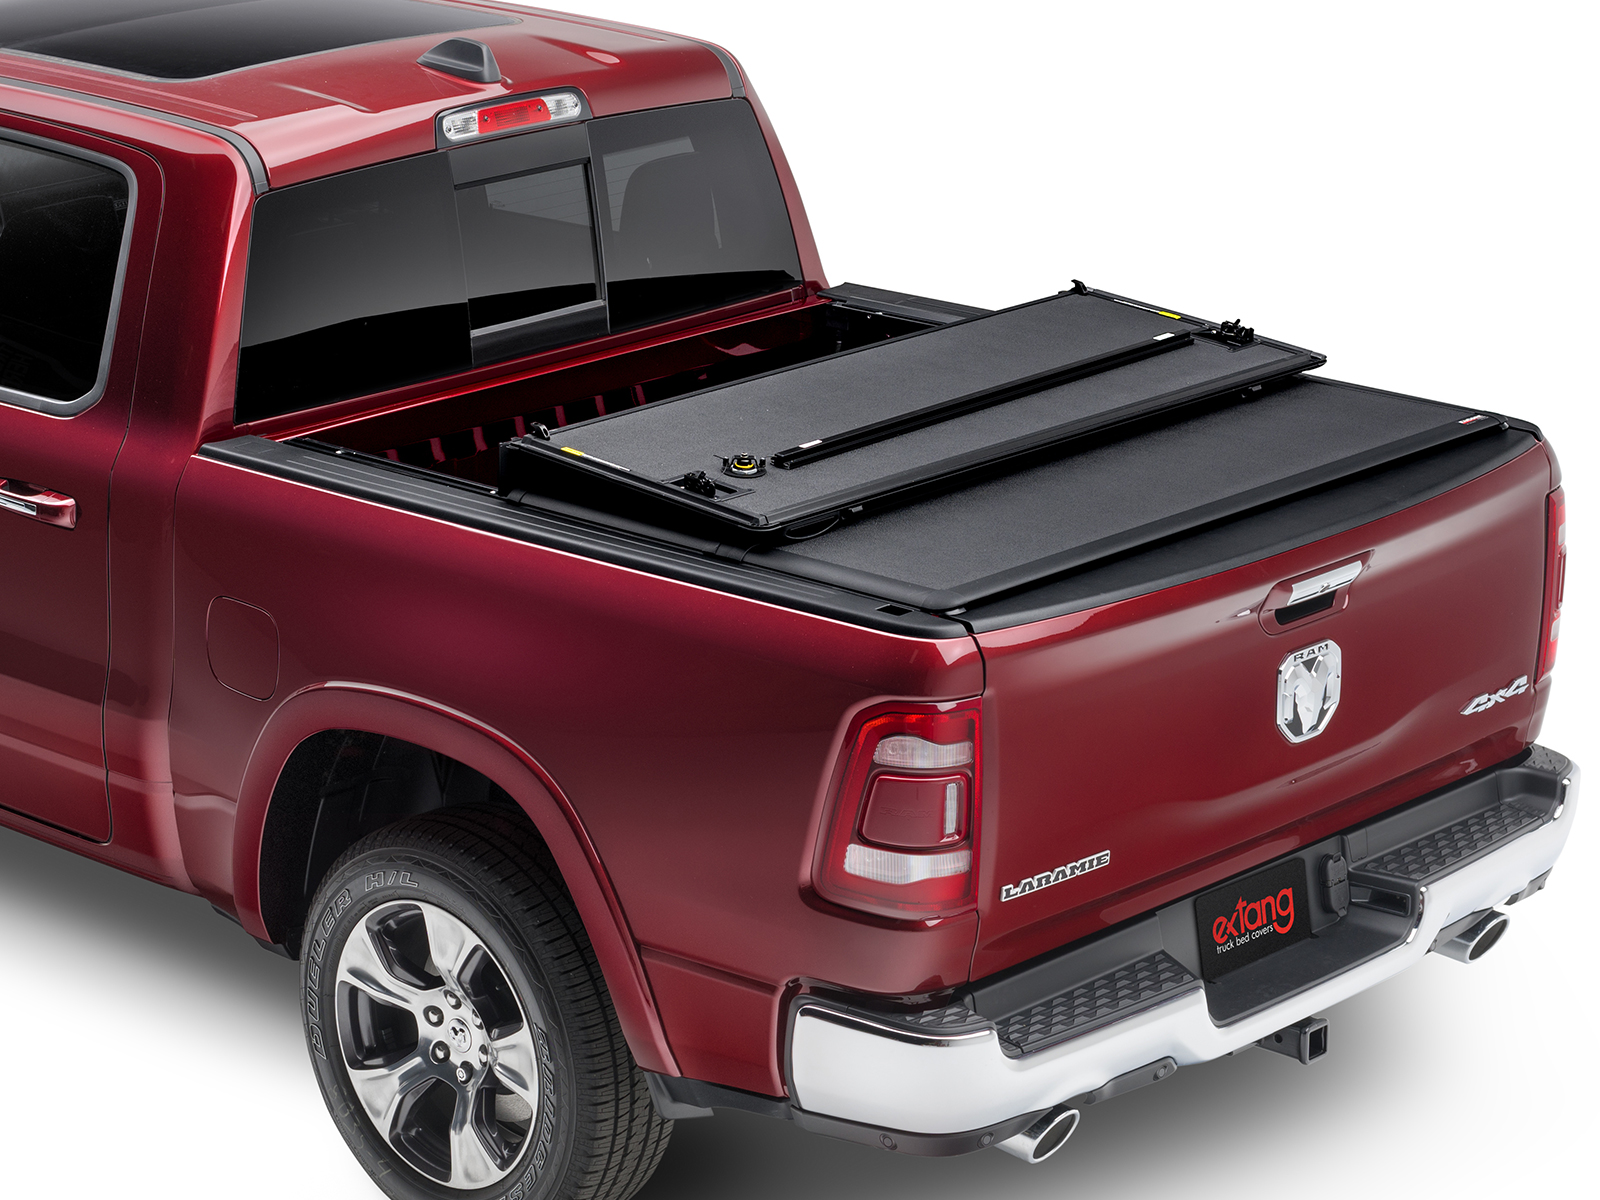 2001 Dodge Ram 1500 Accessories Tonneau Covers World